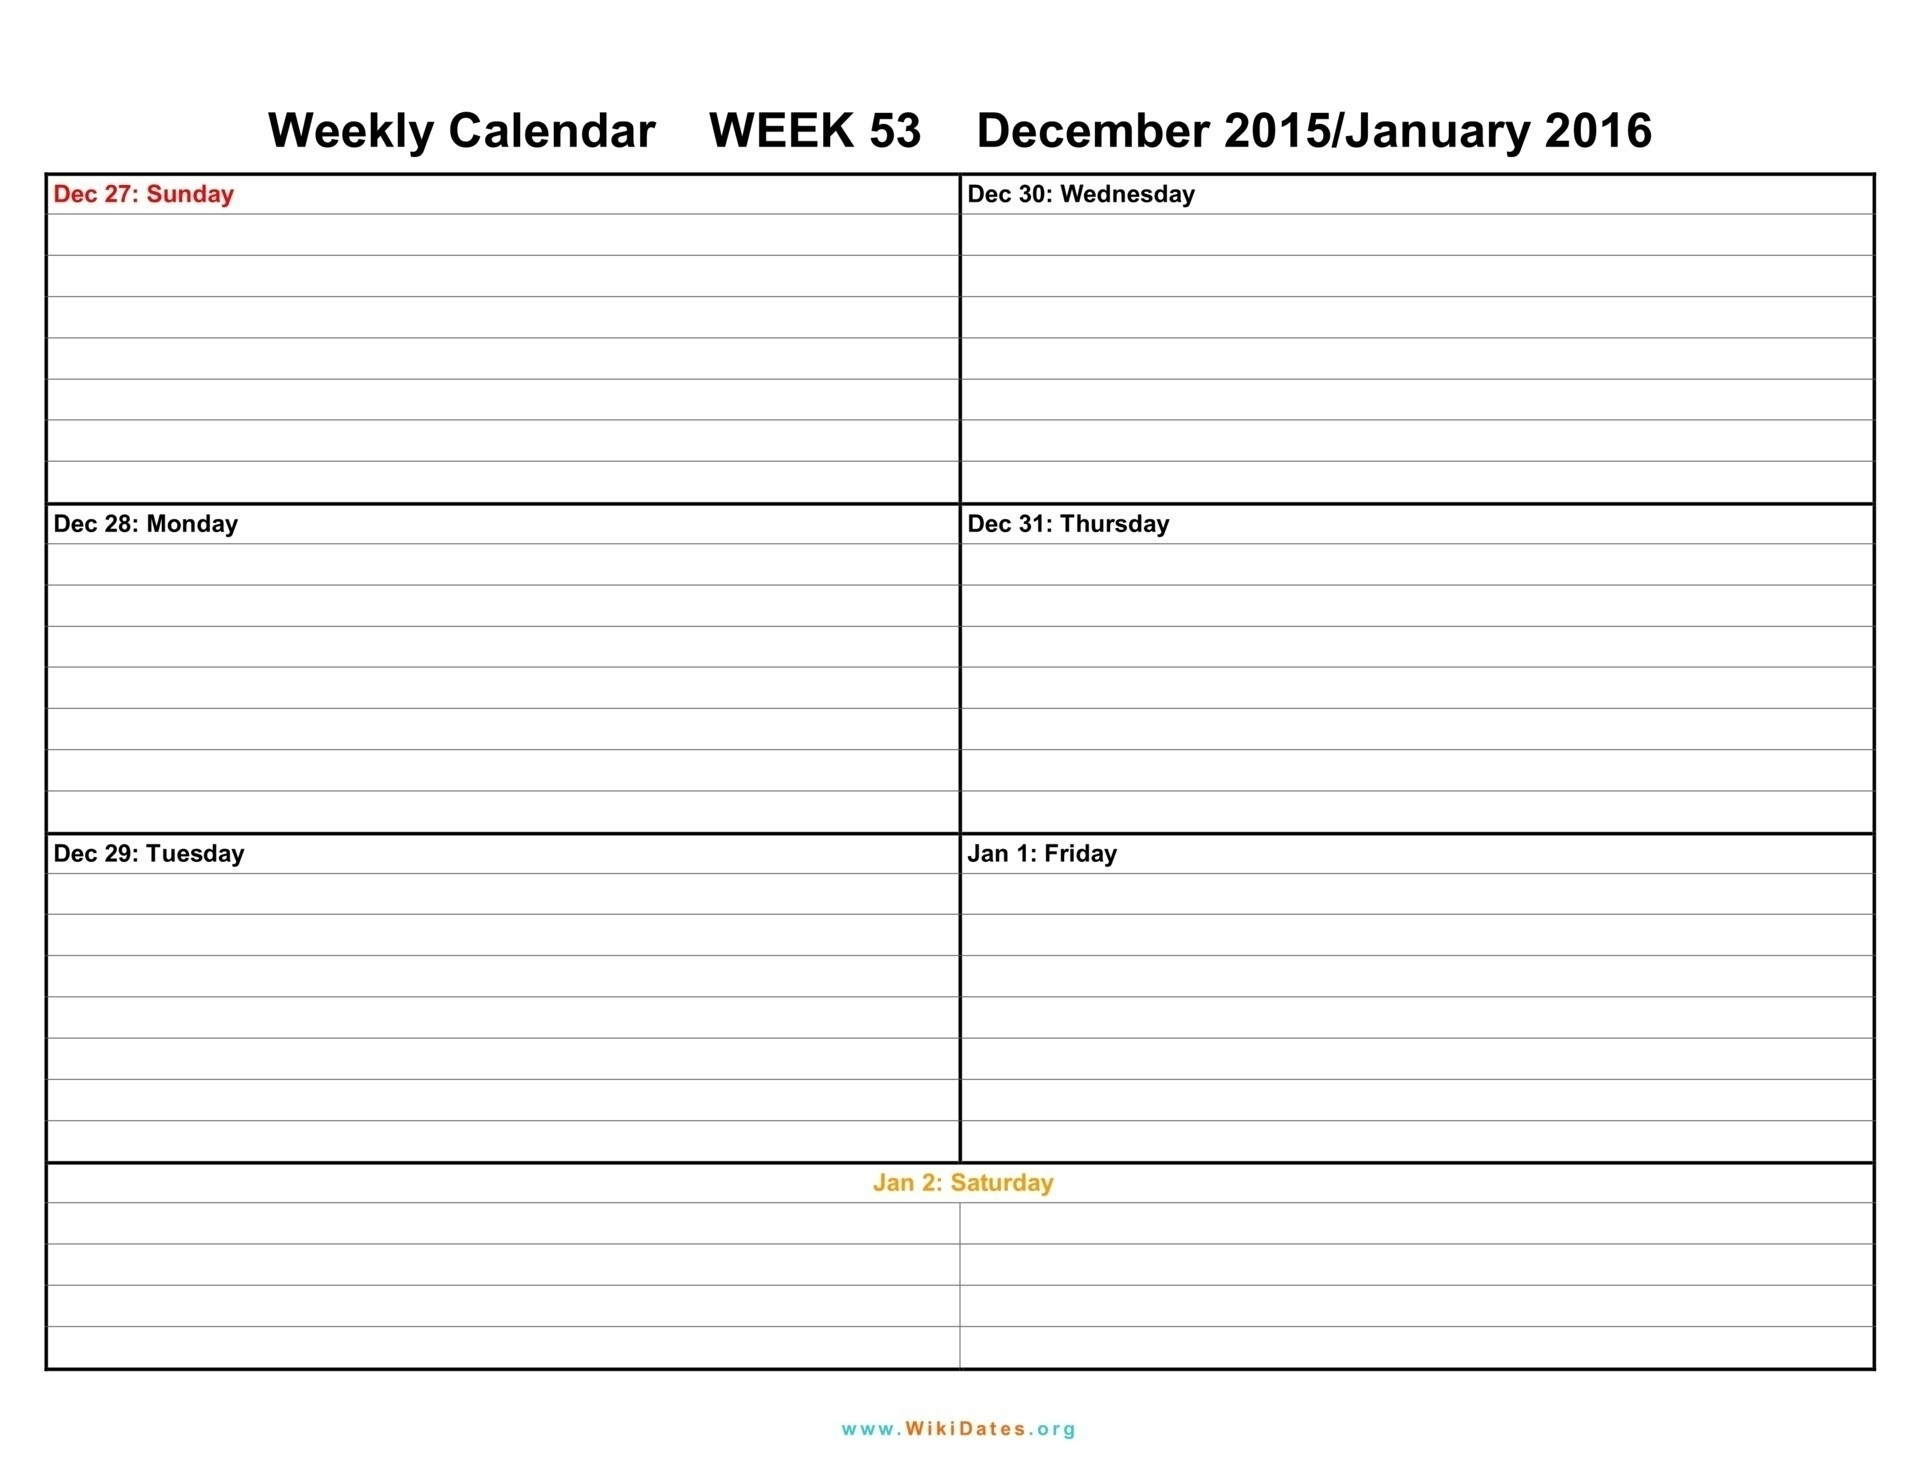 Schedule Template Blank Weekly Printable Calendar May August | Smorad throughout 6 Week Printable Blank Calendar